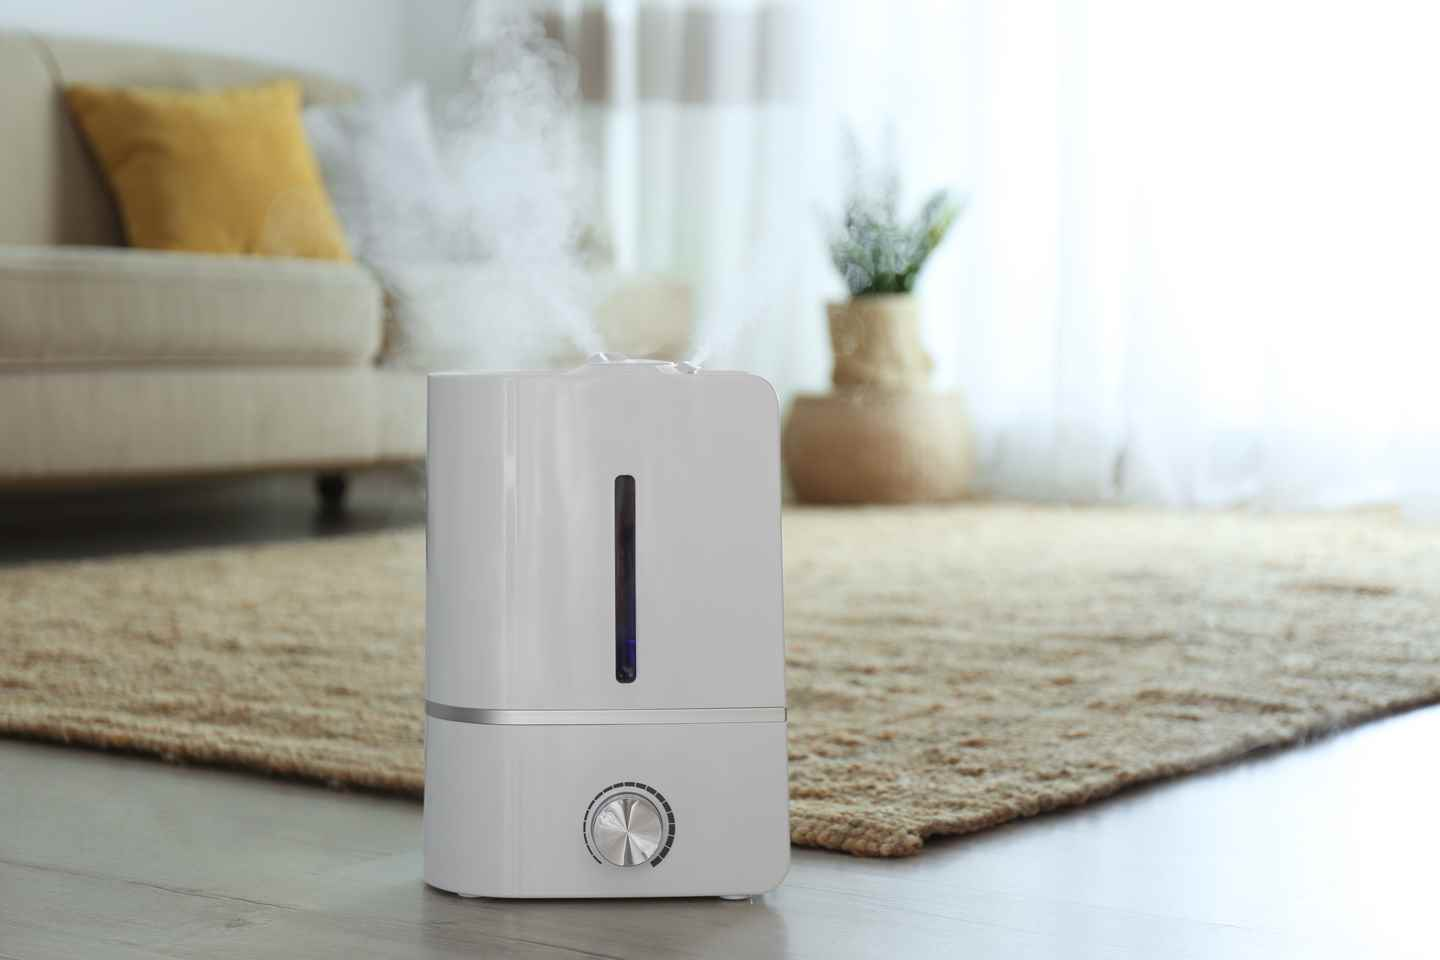 Adding vinegar to humidifier water will help to reduce bacteria, mold and mildew